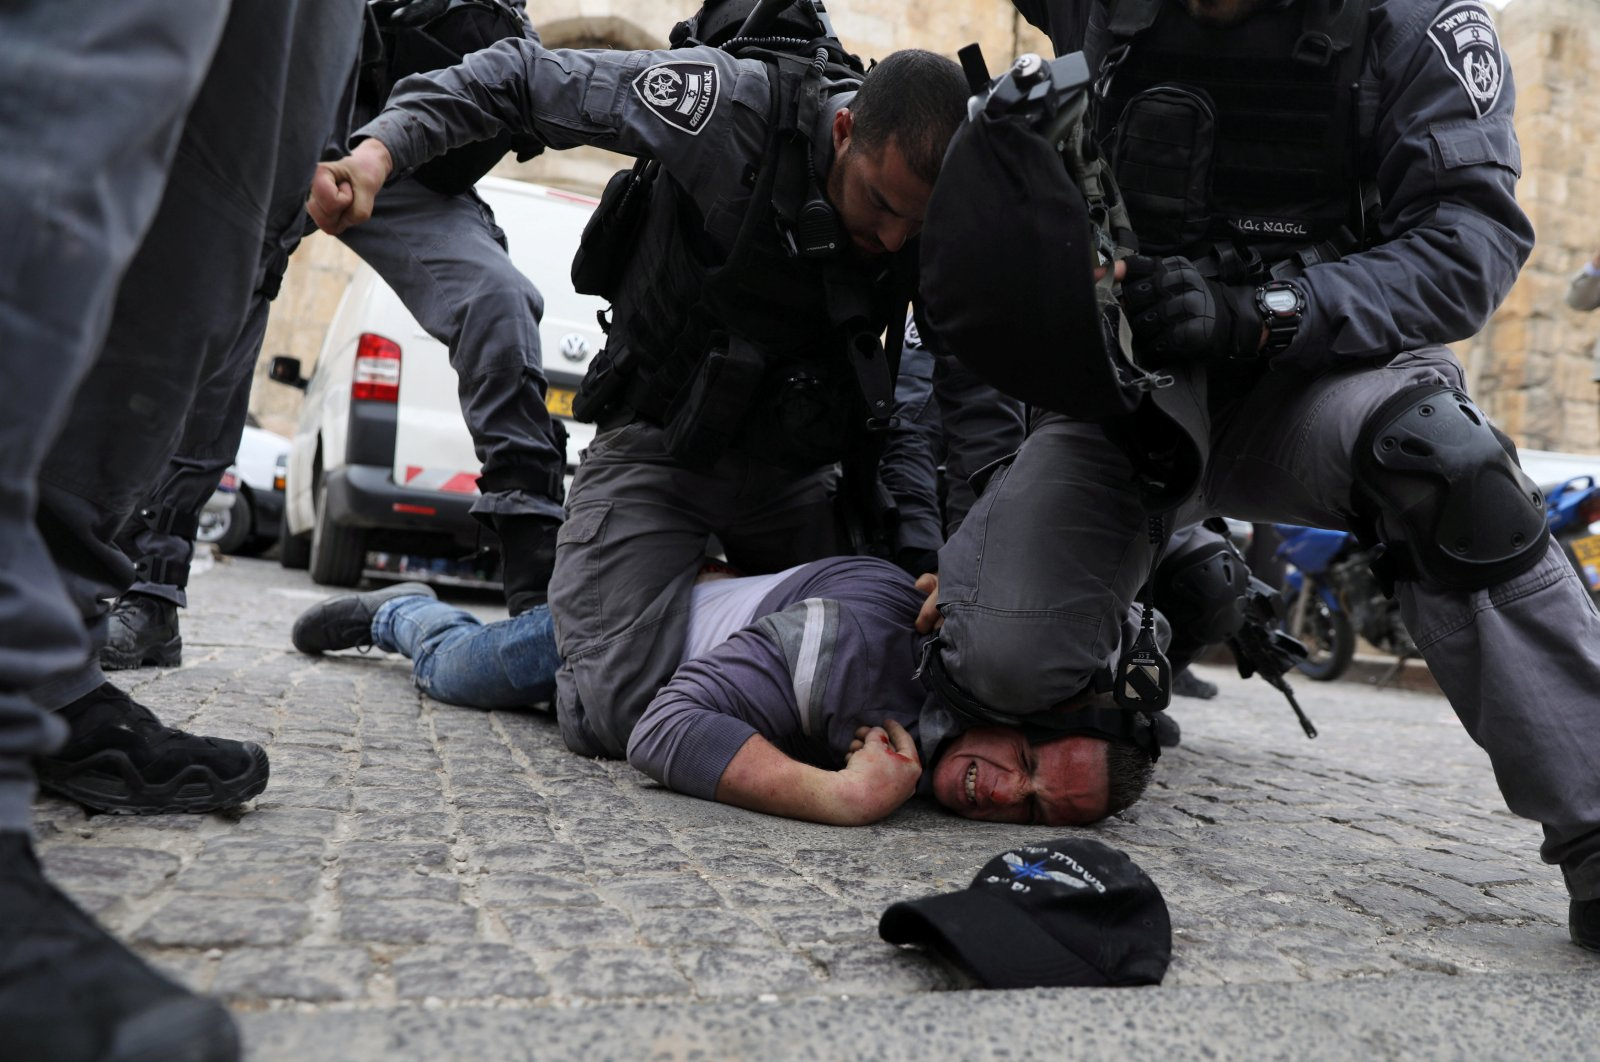 Israeli police officers detain a Palestinian protestor during scuffles outside the compound housing al-Aqsa Mosque in Jerusalem's Old City, March 12, 2019. (Reuters Photo)